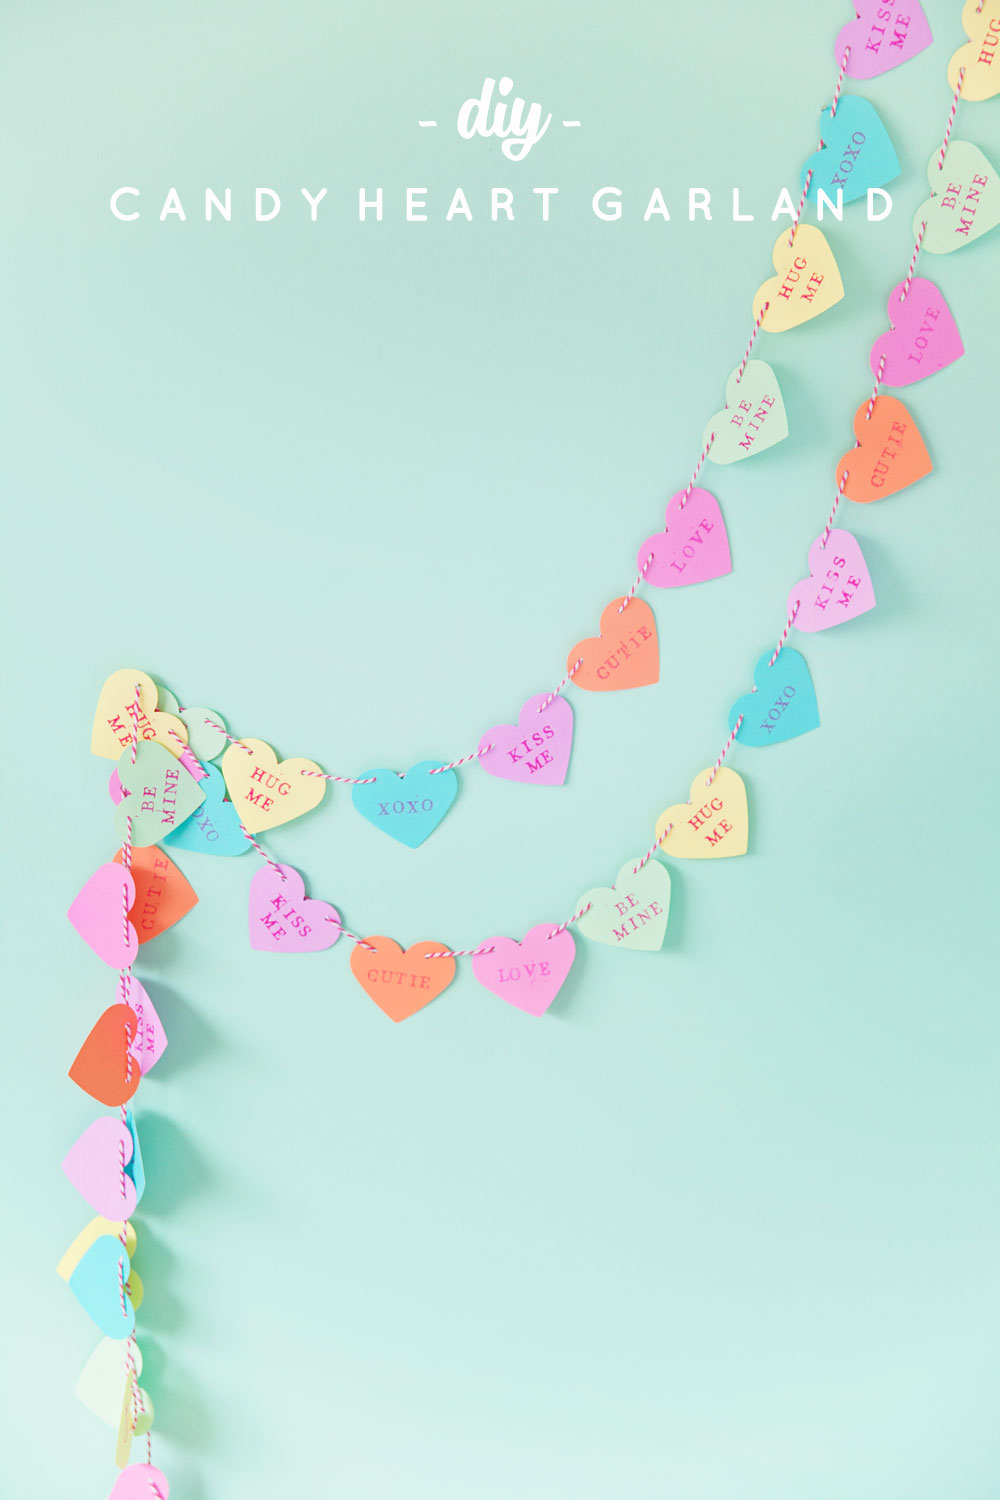 DIY CANDY HEART GARLAND Tell Love And Party